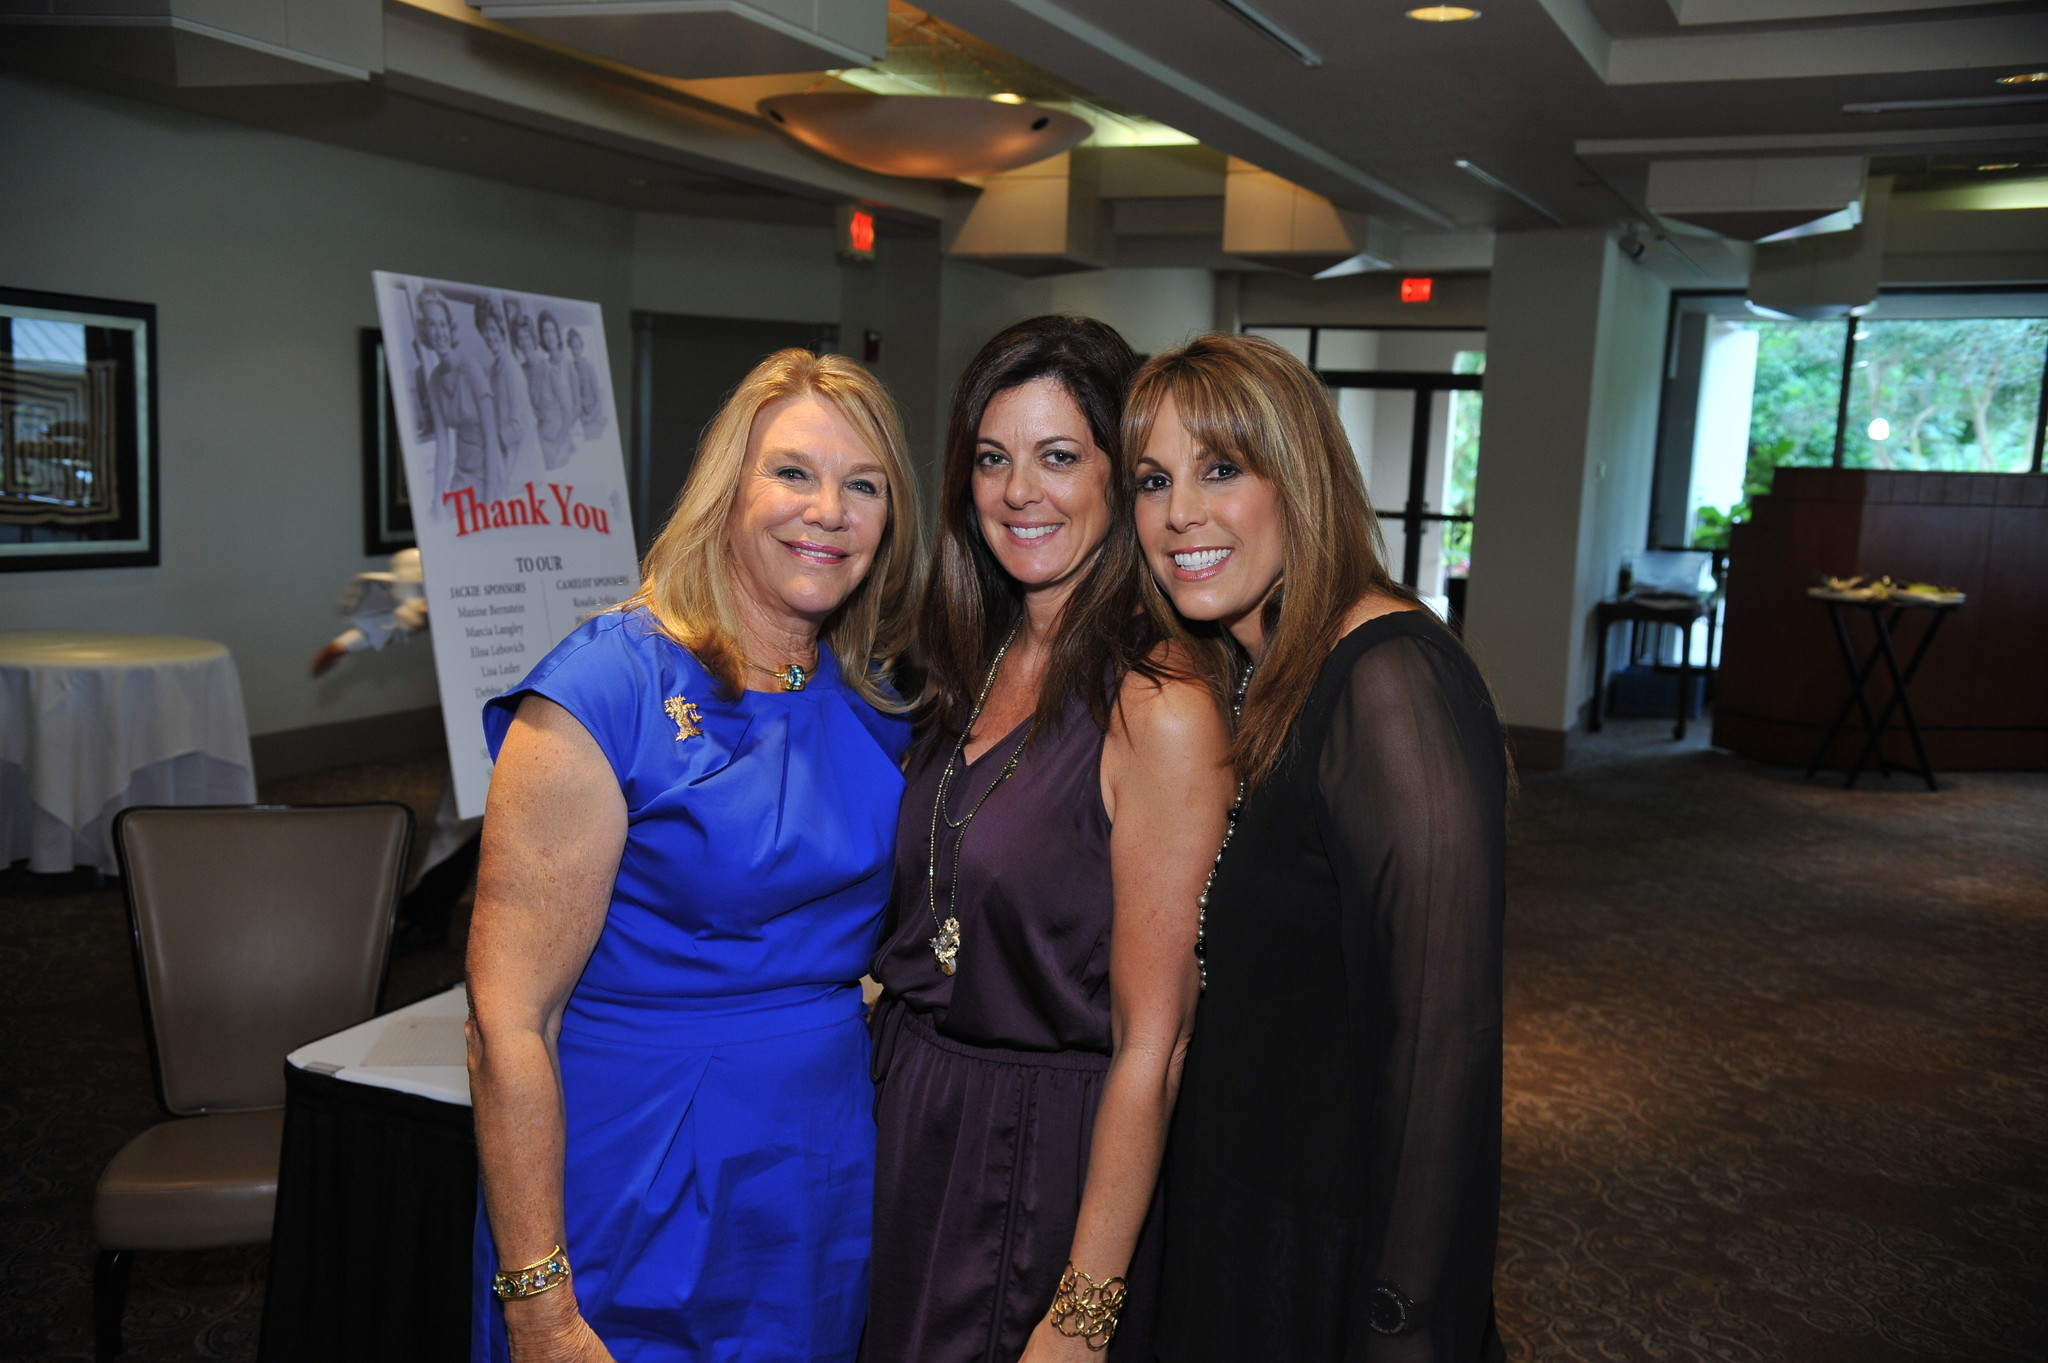 Society Scene photos - Helene Weicholz, left, Lisa Leder and Kim Fetterman support the Jewish Adoption & Foster Care Options (JAFCO) South Palm Beach/North Broward Chapter